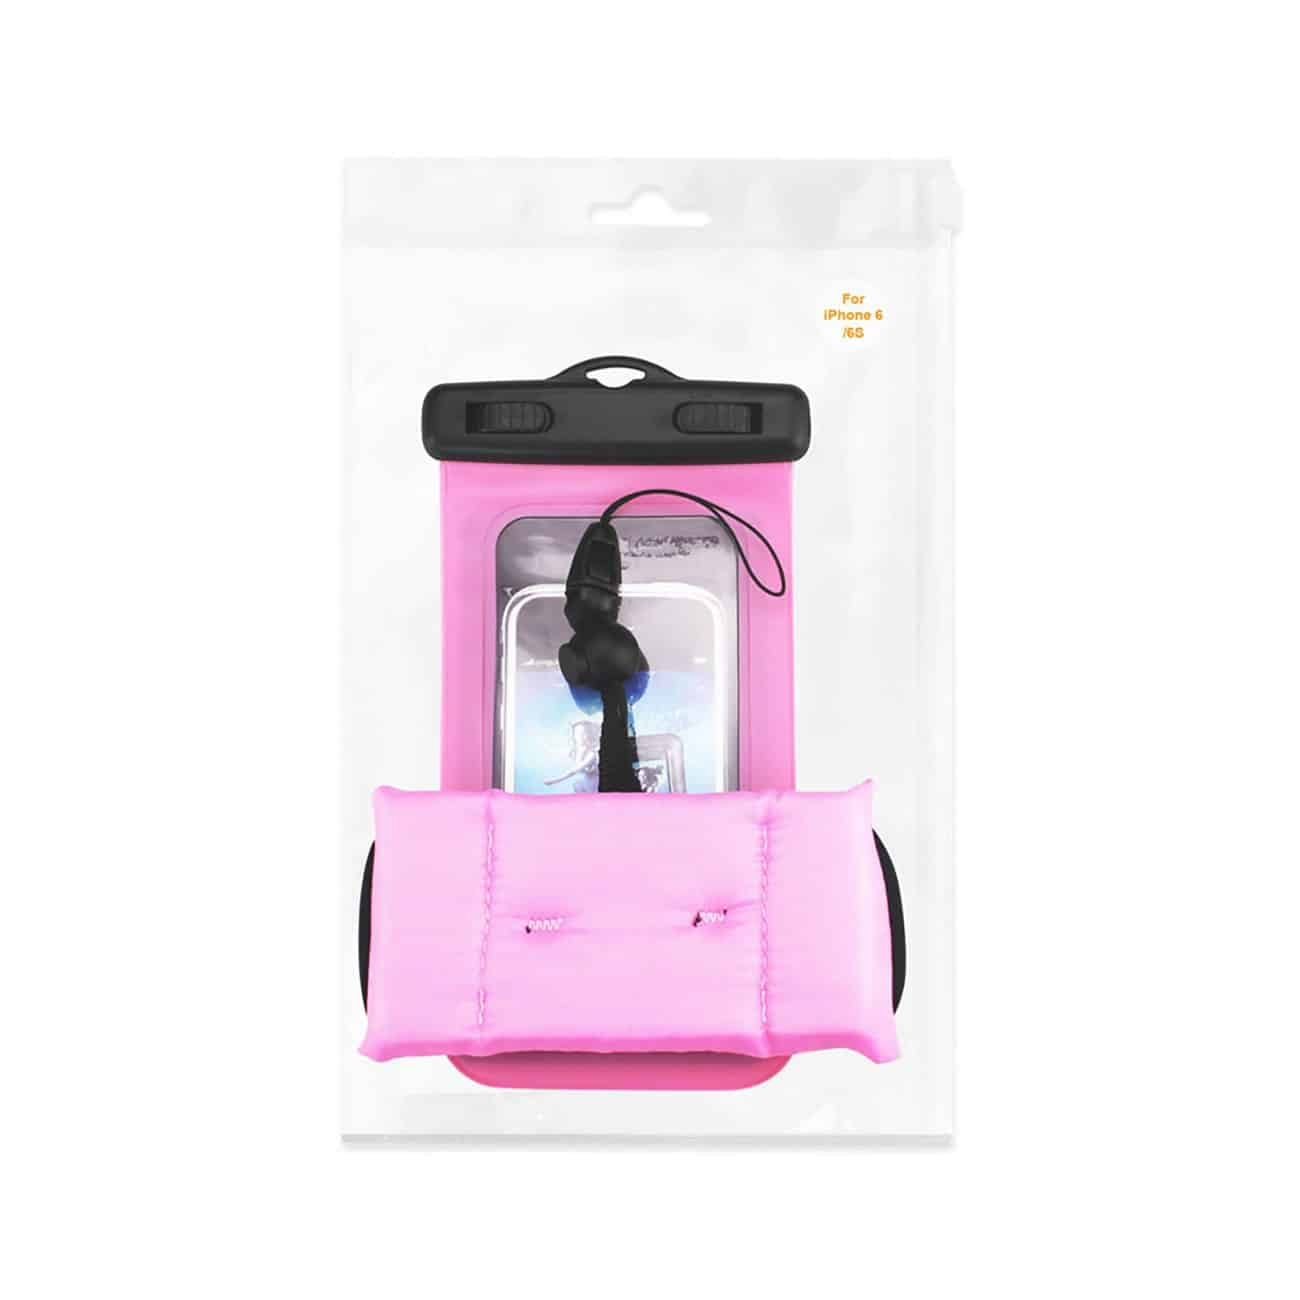 WATERPROOF CASE FOR 4.7 INCHES DEVICES WITH FLOATING ADJUSTABLE WRIST STRAP IN HOT PINK